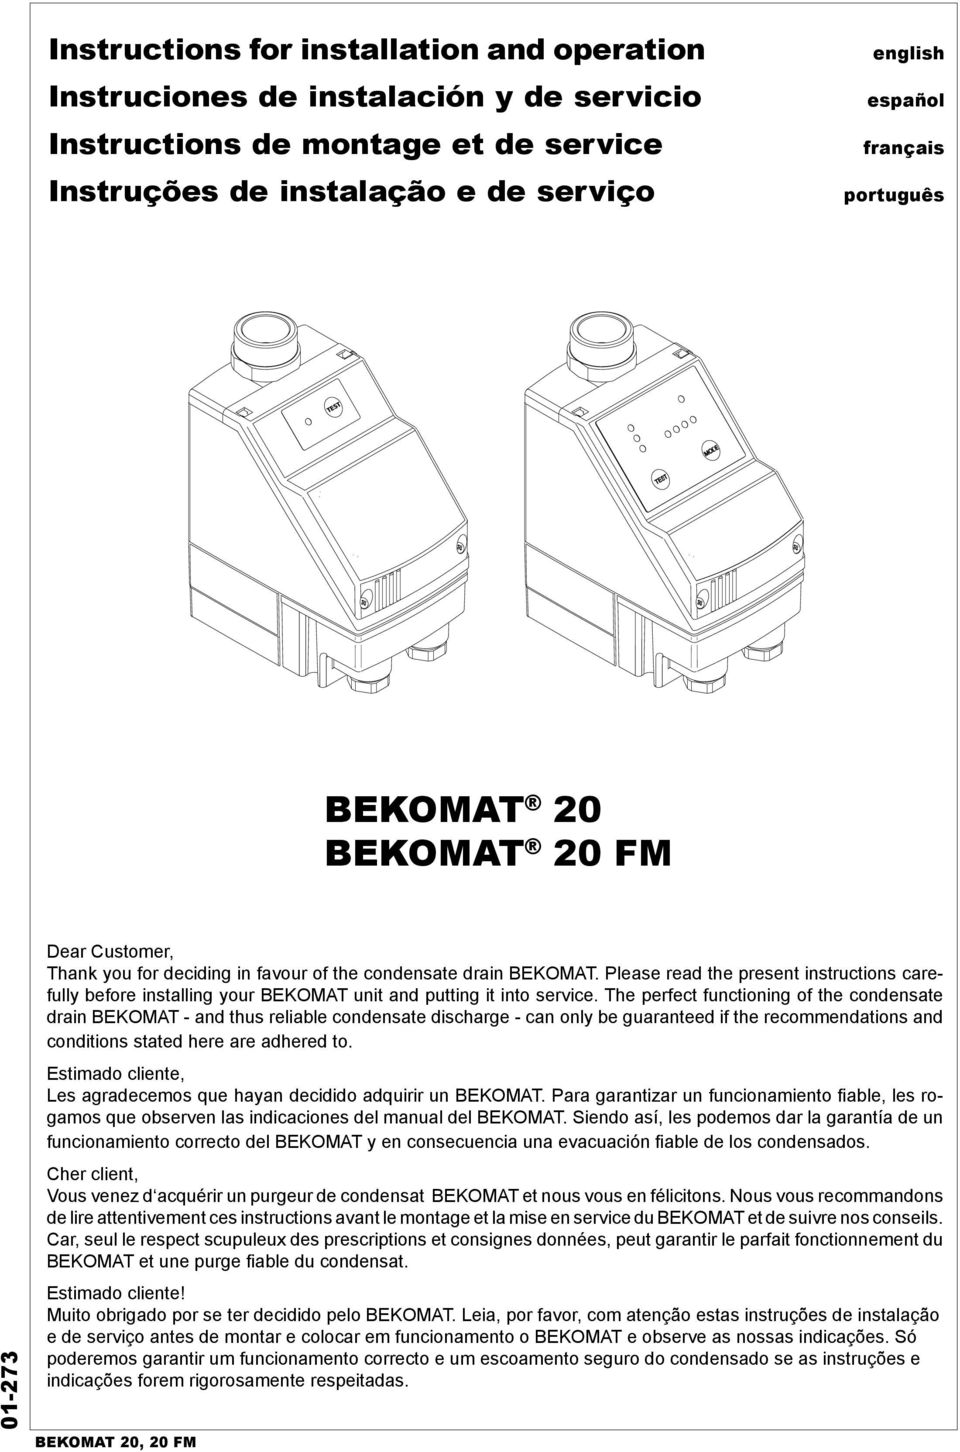 Please read the present instructions carefully before installing your BEKOMAT unit and putting it into service.